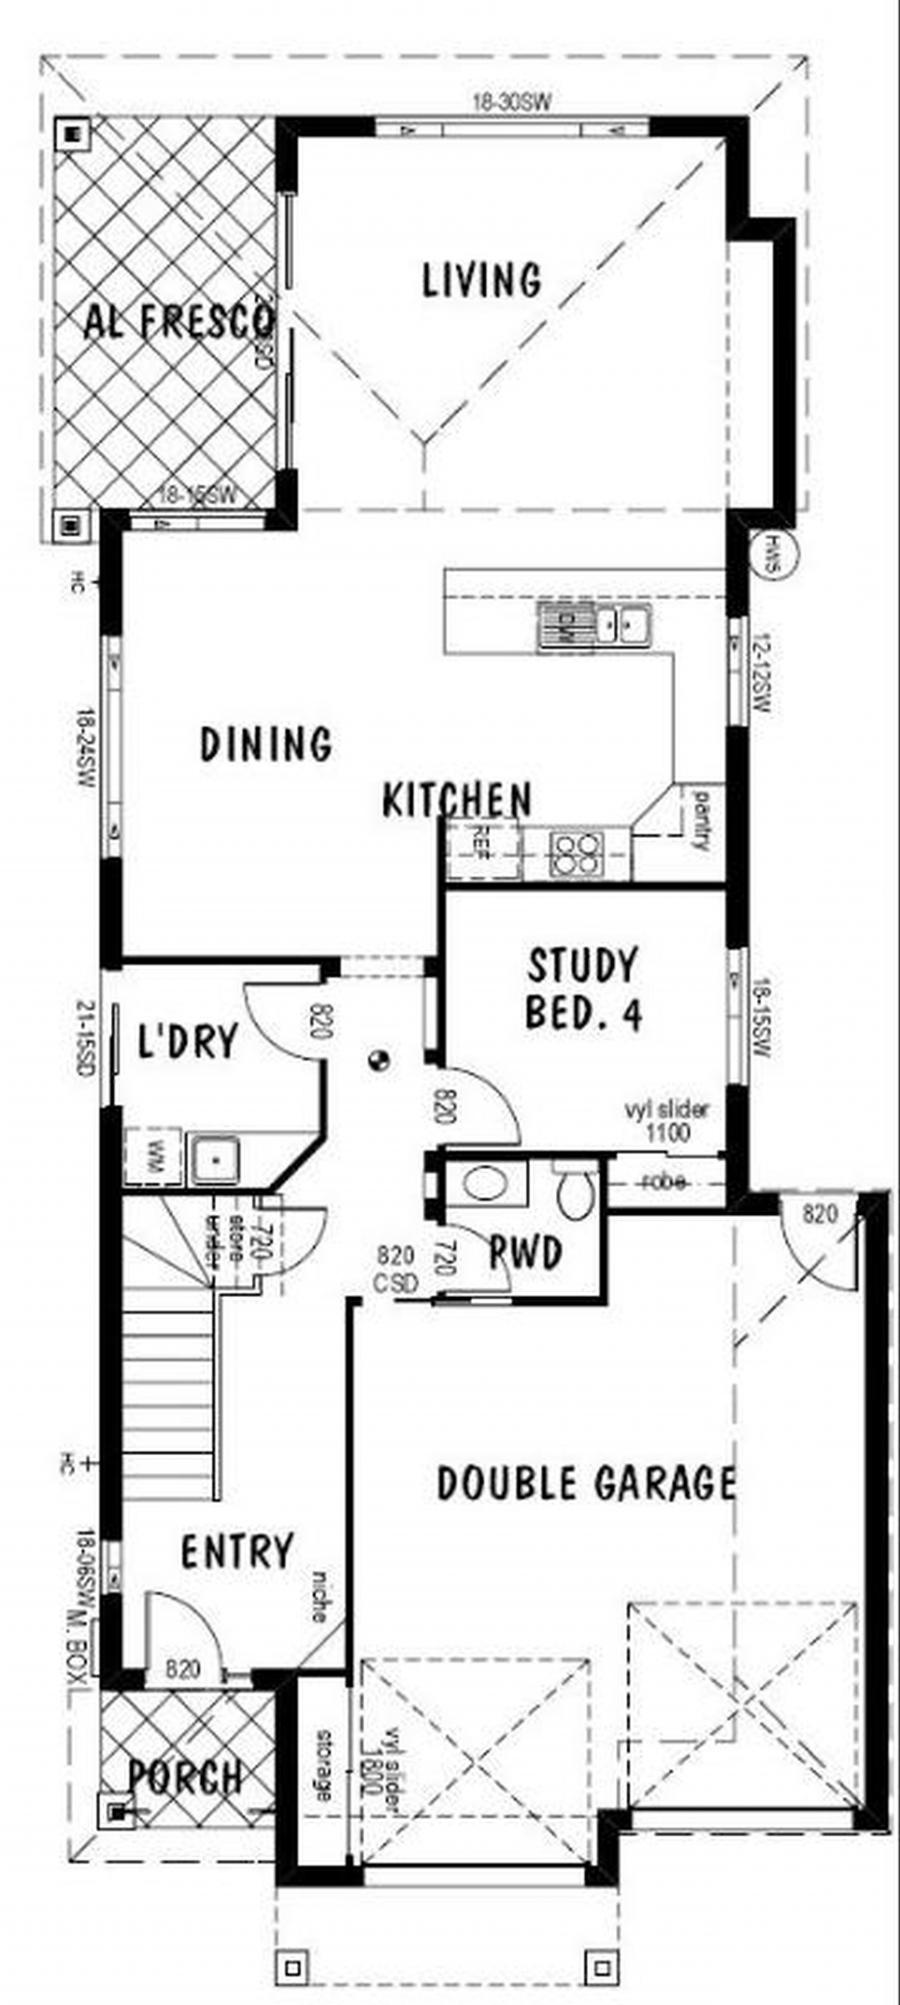 Canadian house plans with photos - Canadian home designs floor plans ...